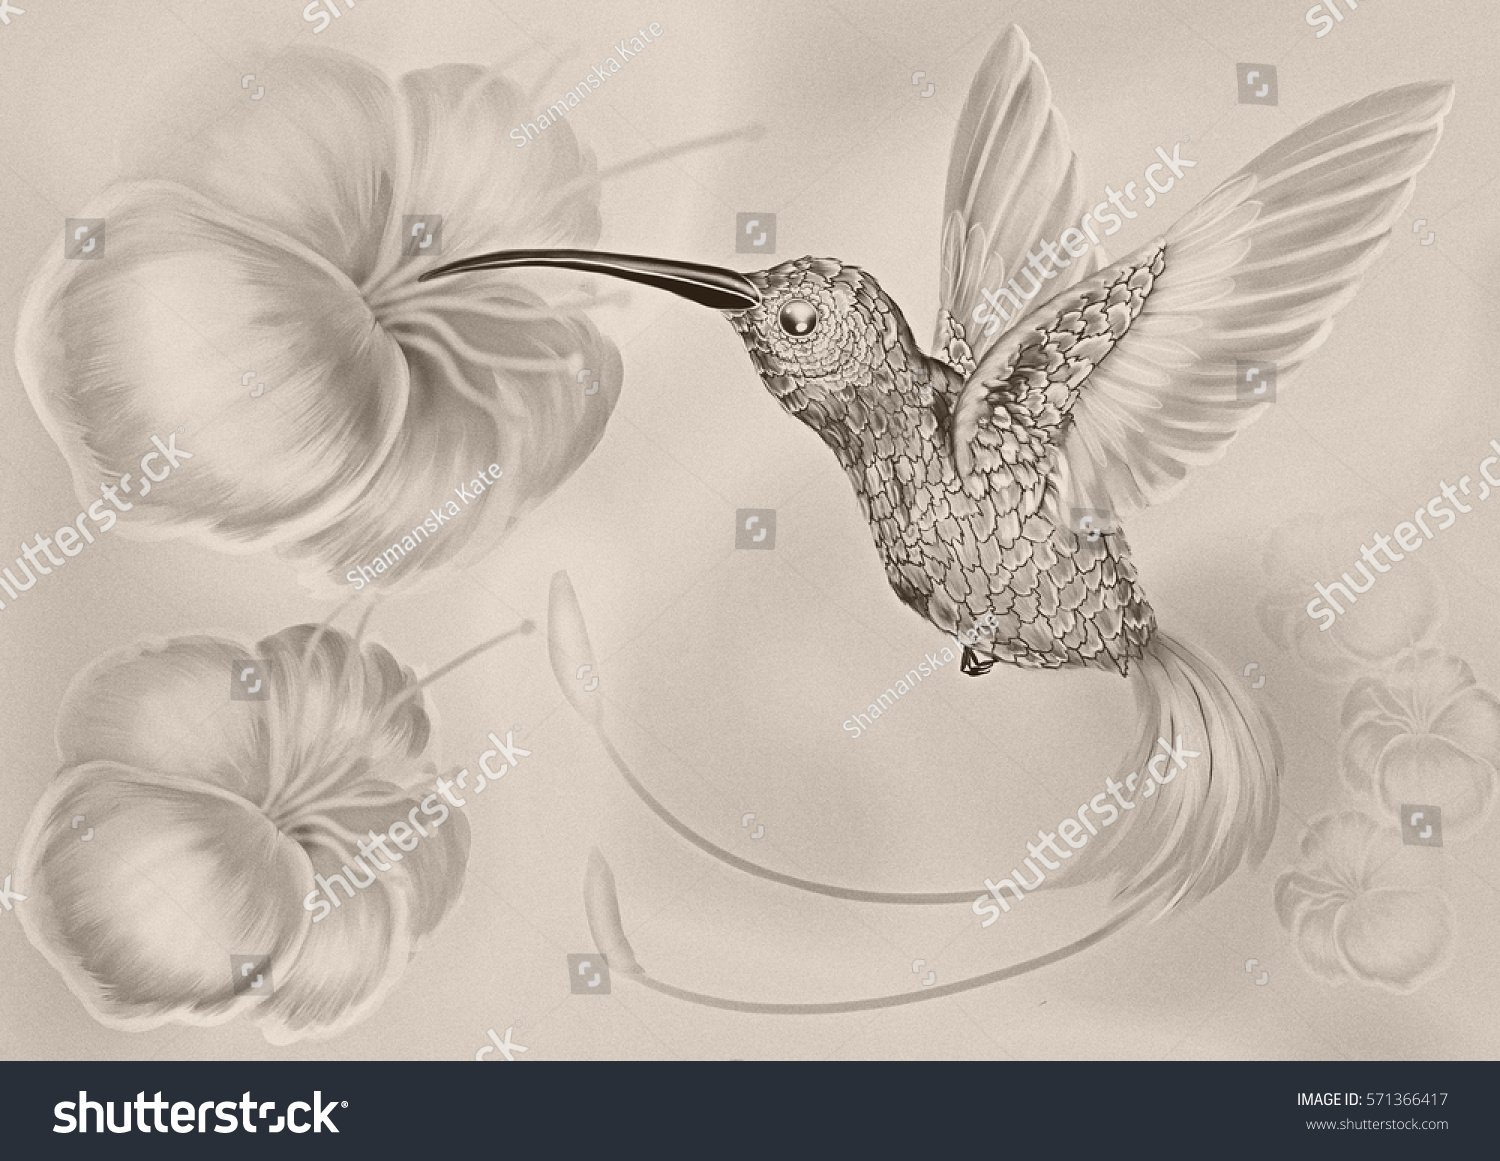 Pencil sketch hummingbird in flight and the flower digital drawing